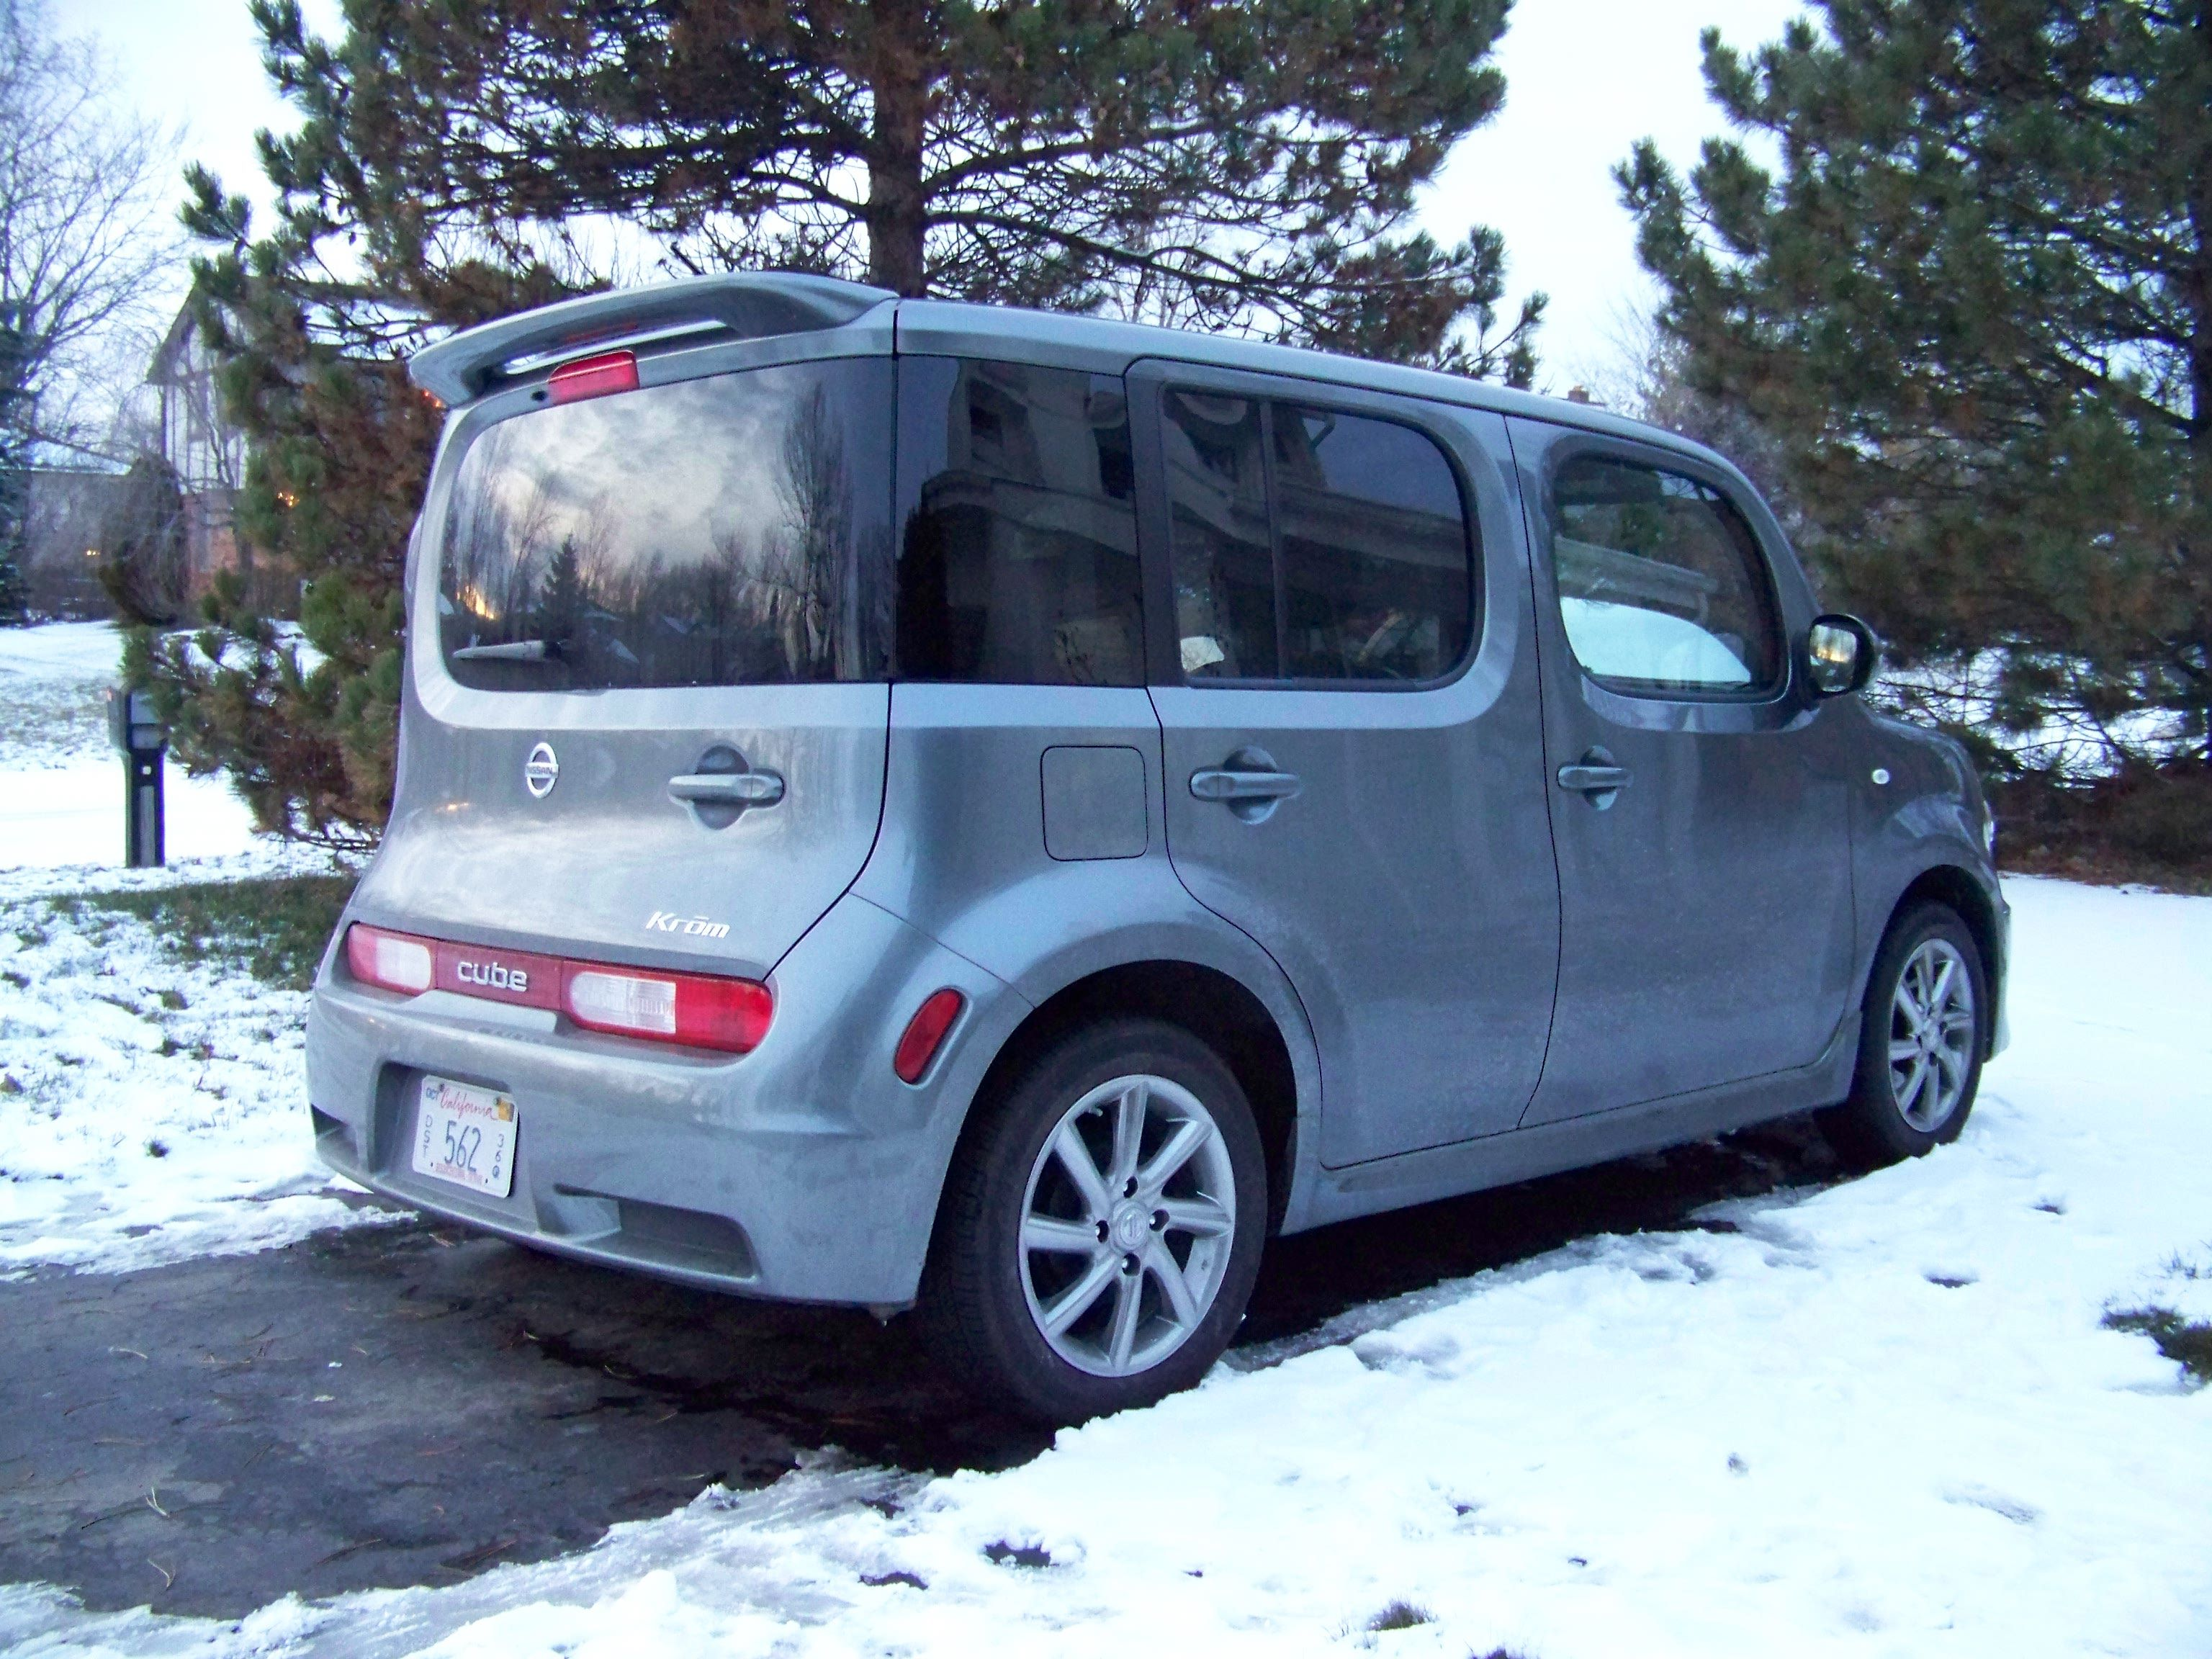 Nissan cube google search cars trucks pinterest nissan the nissan cube i love this ugly little car vanachro Image collections